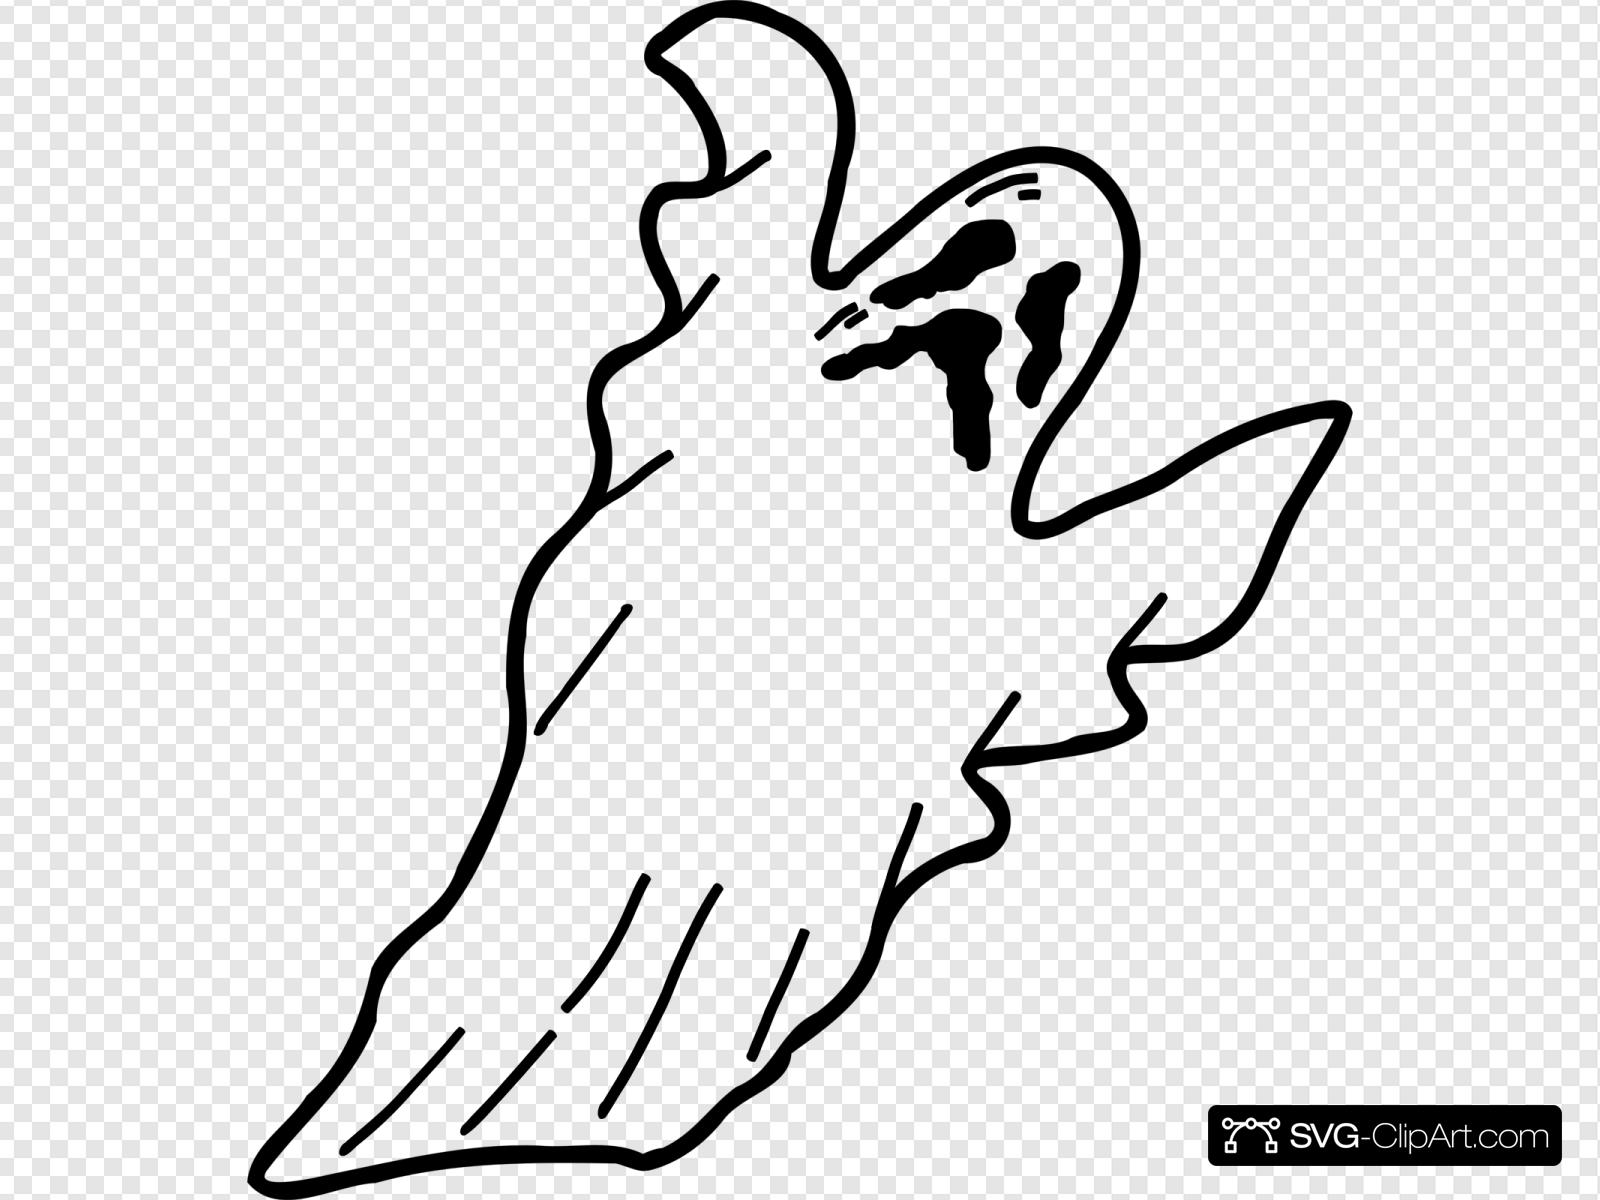 Scary Ghost Svg Vector Scary Ghost Clip Art Svg Clipart